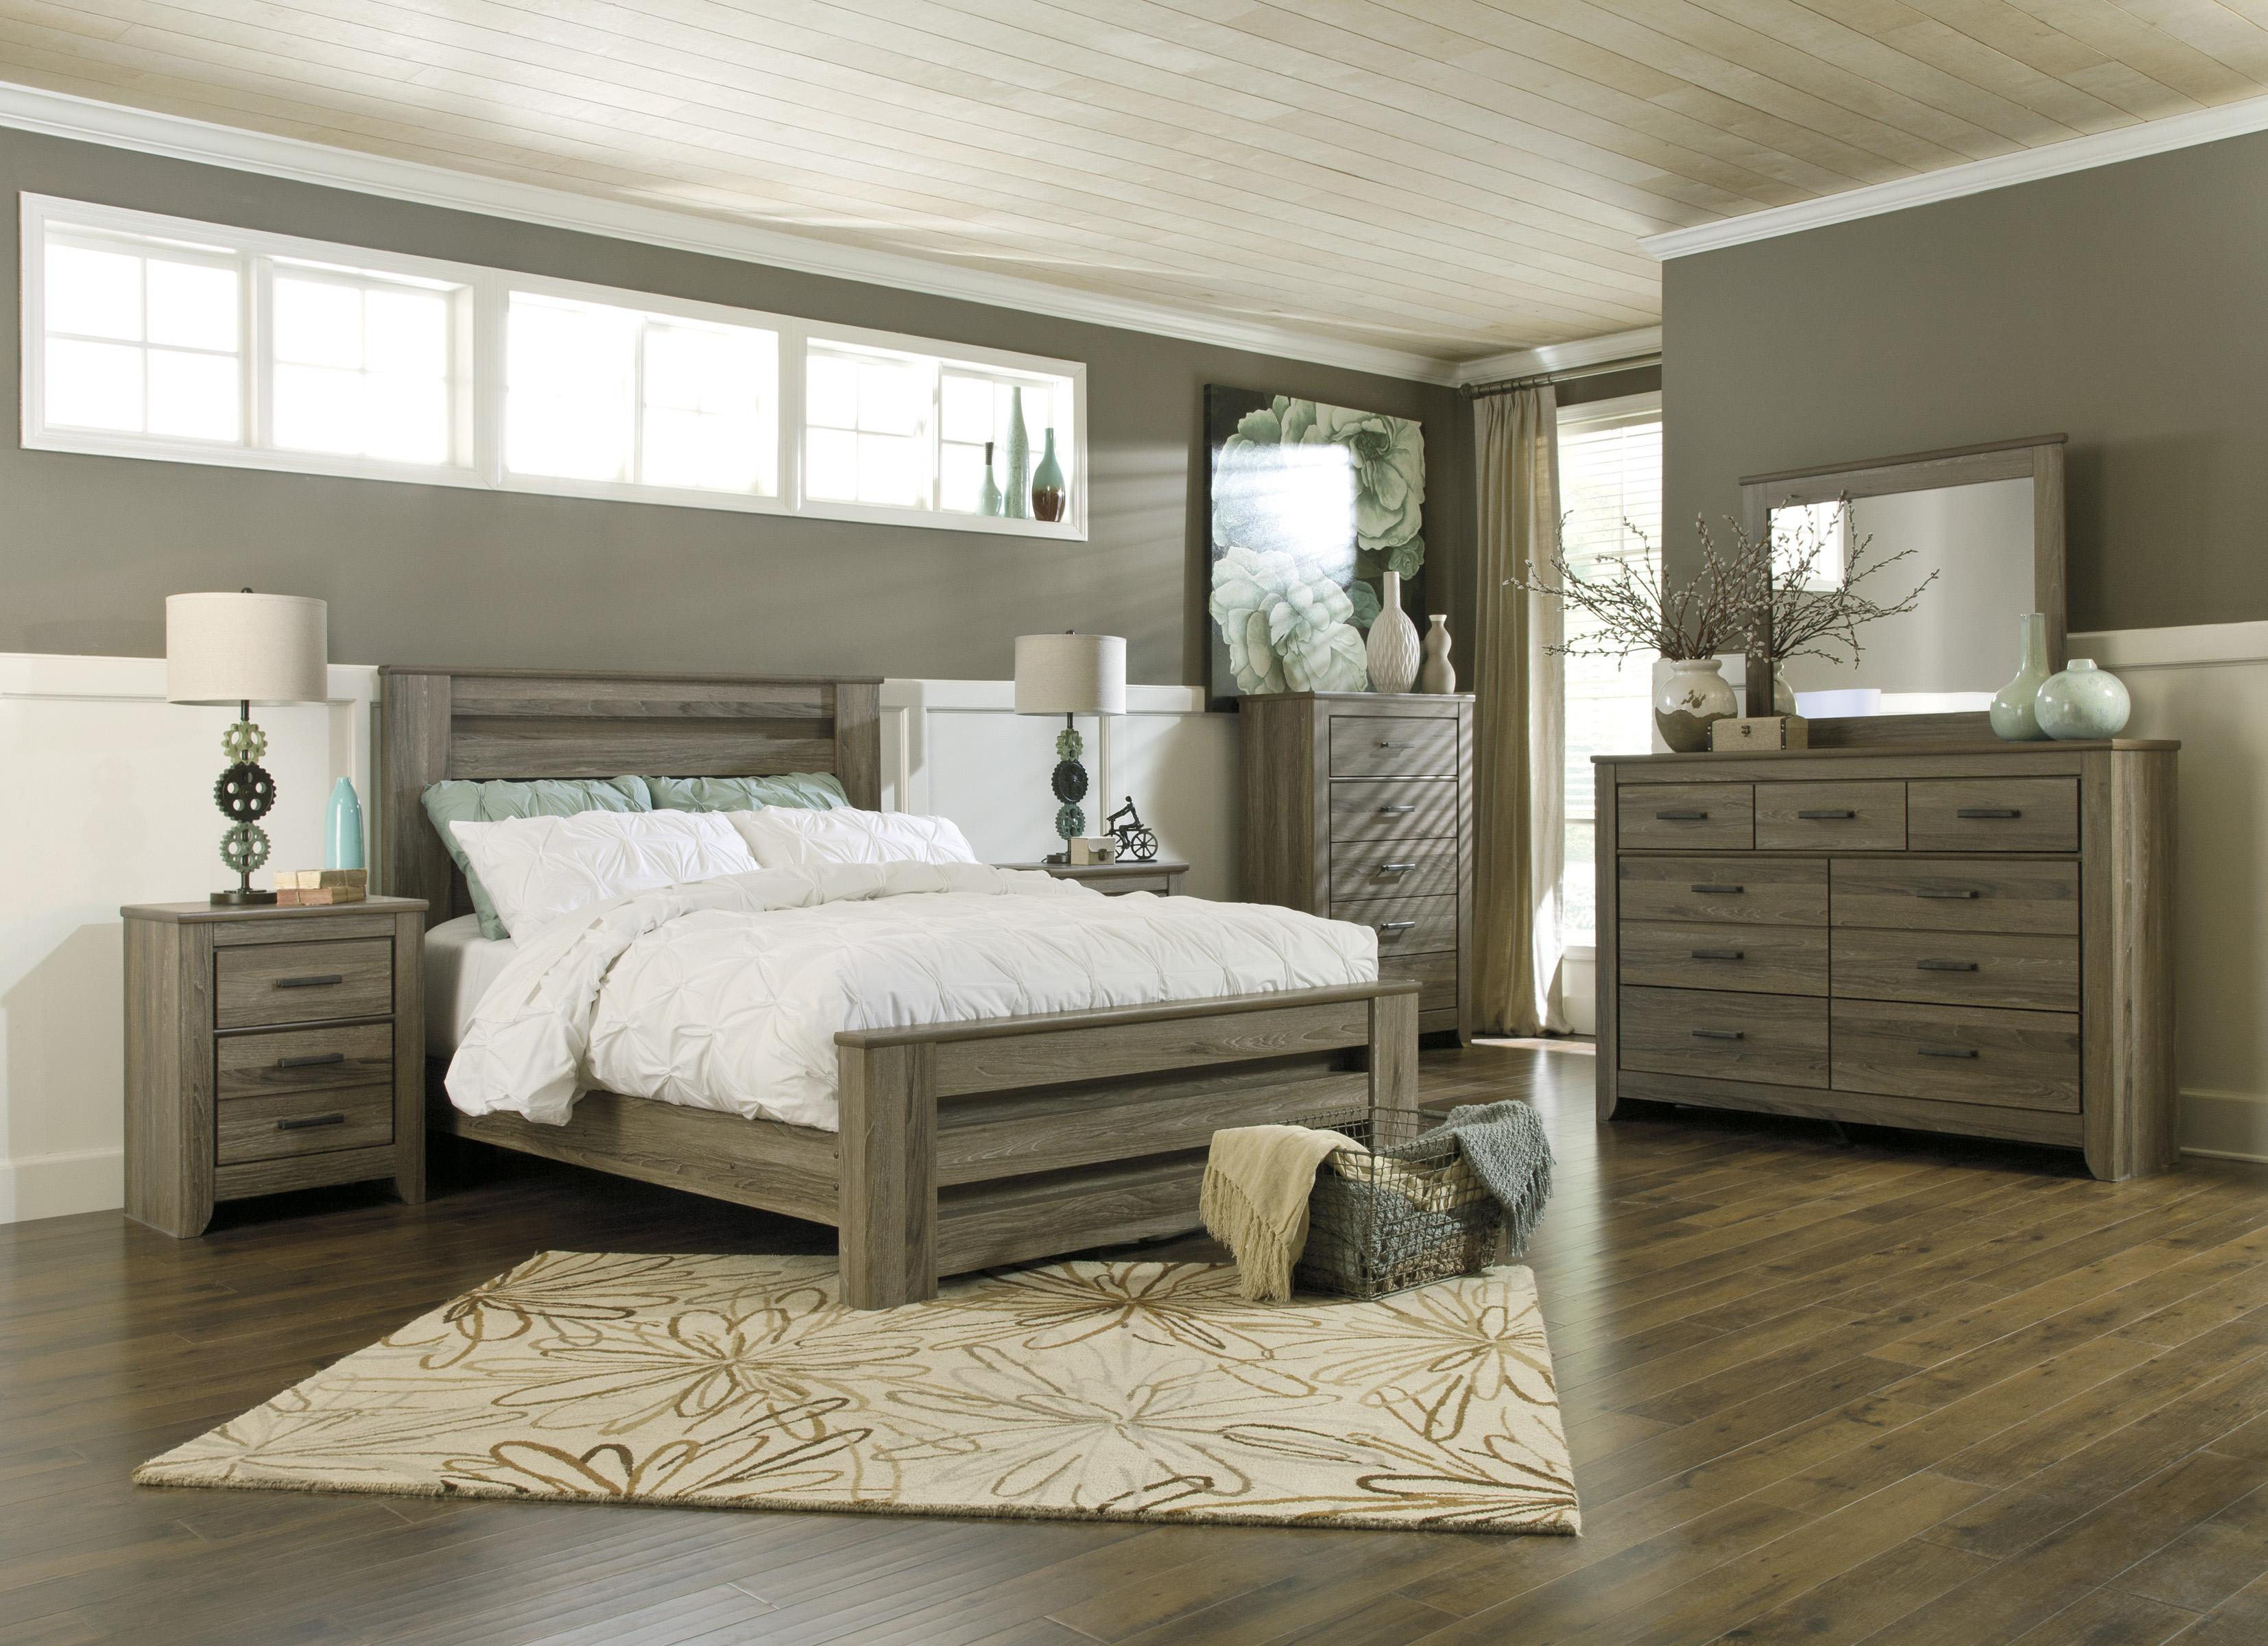 Zelen 7pc Queen Bedroom Group by Signature Design by Ashley at Value City Furniture